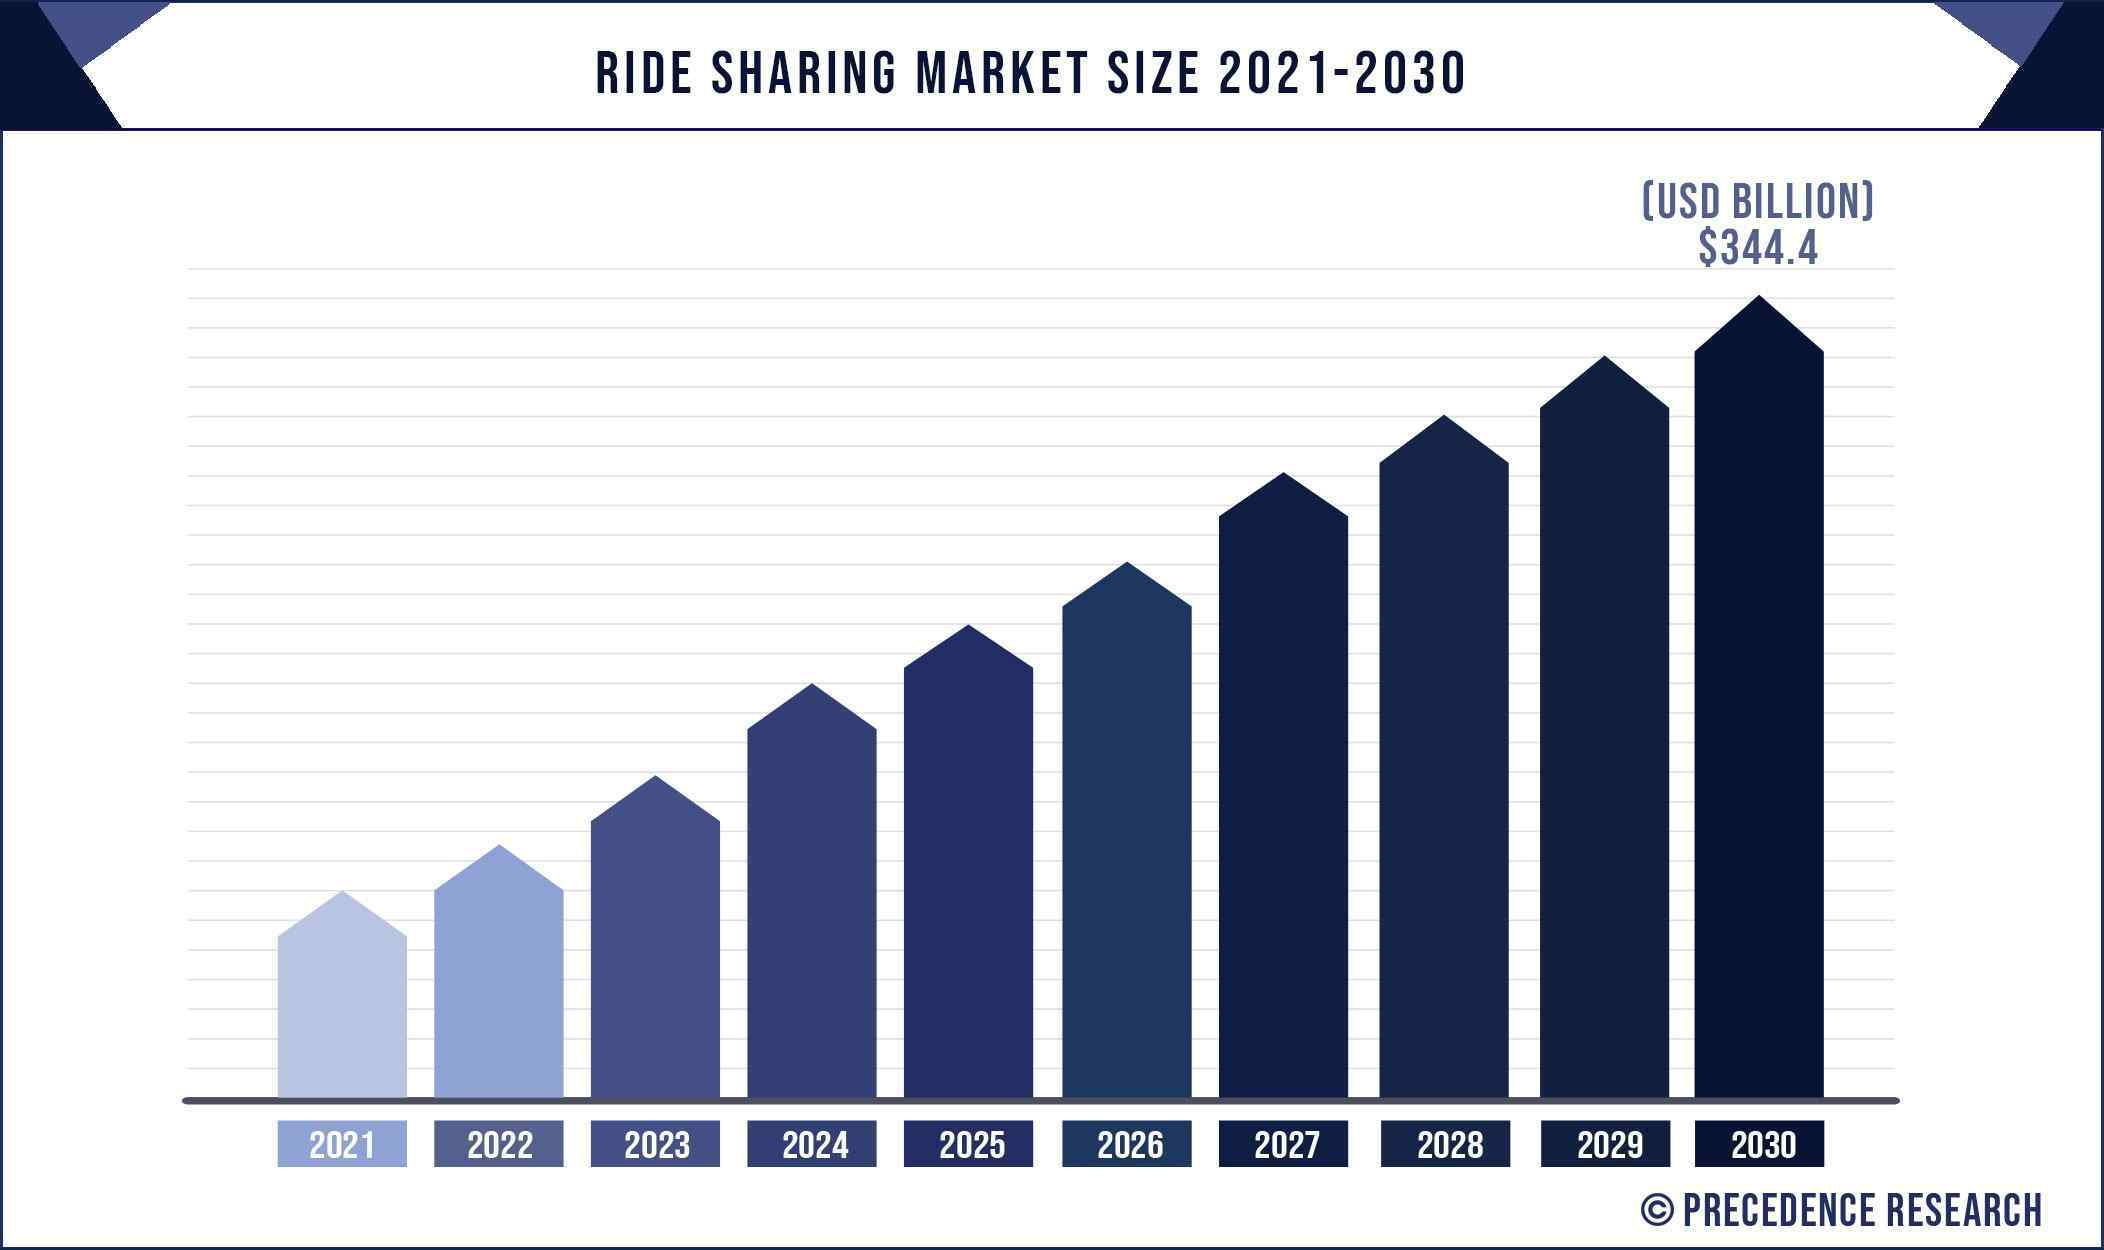 Ride Sharing Market Size 2021 to 2030